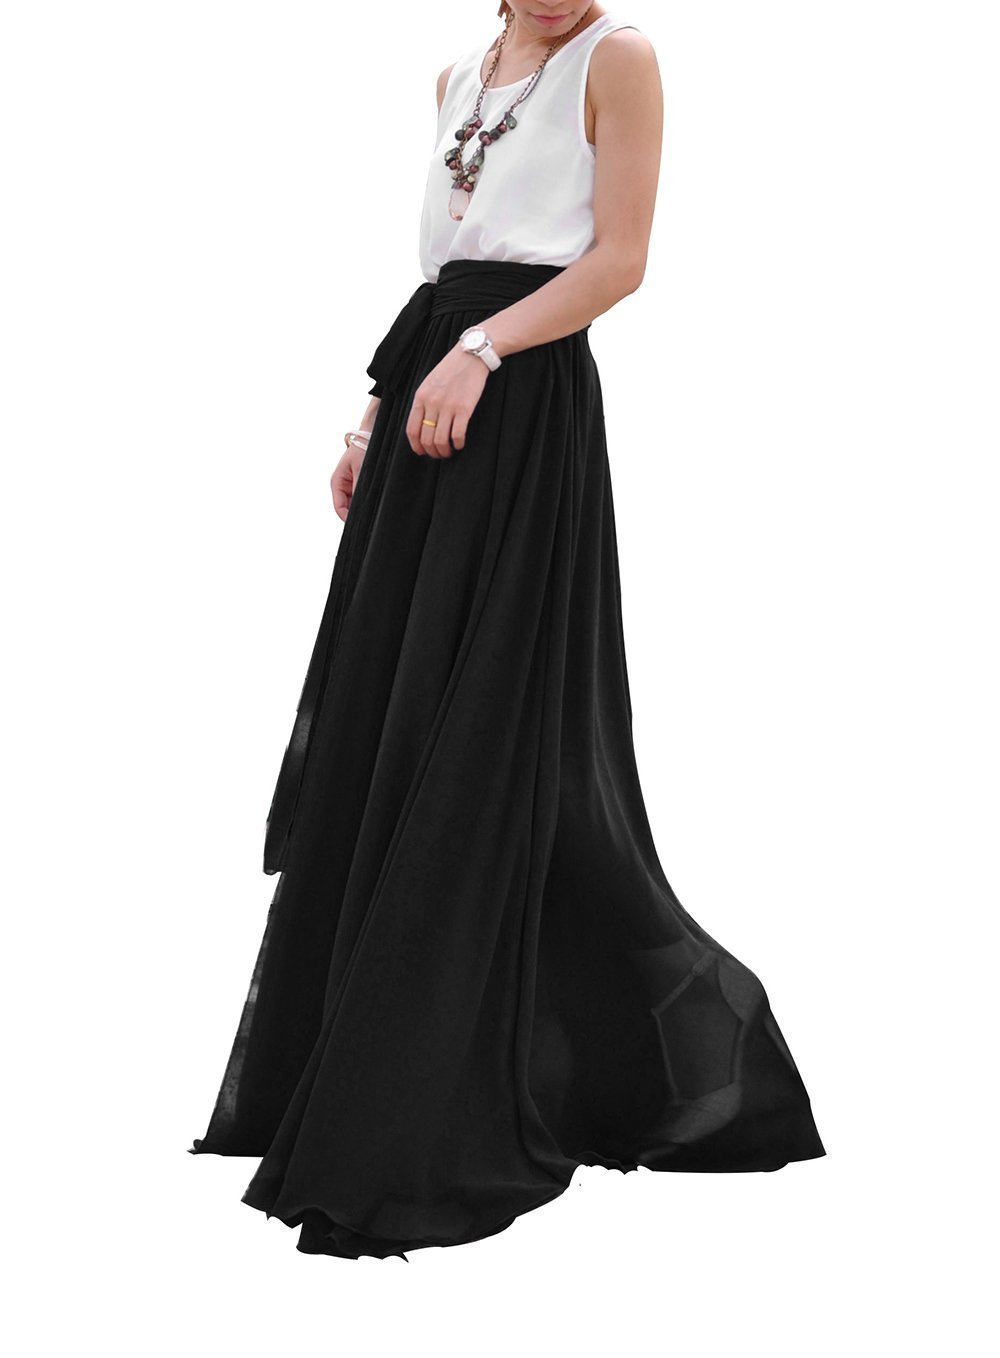 Melansay Women's Beatiful Bow Tie Summer Beach Chiffon High Waist Maxi Skirt XXL,Black